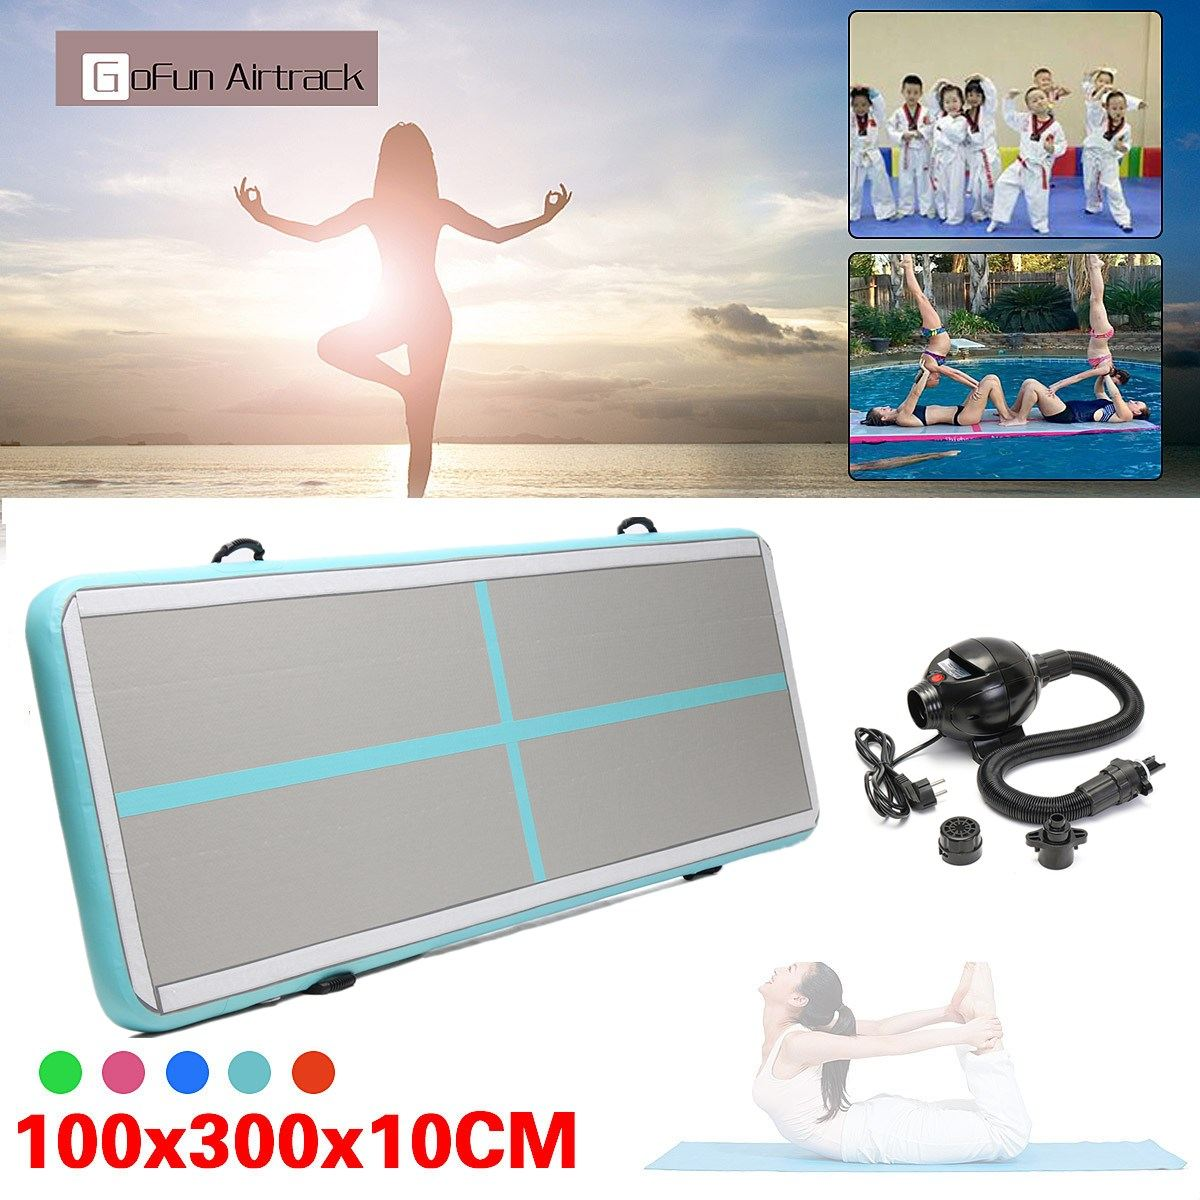 Newest 100x300x10cm Inflatable Tumble Track Trampoline Air Track Taekwondo Gymnastics Inflatable Air Mat free shipping 6 2m inflatable tumble track trampoline air track gymnastics inflatable air mat come with a pump